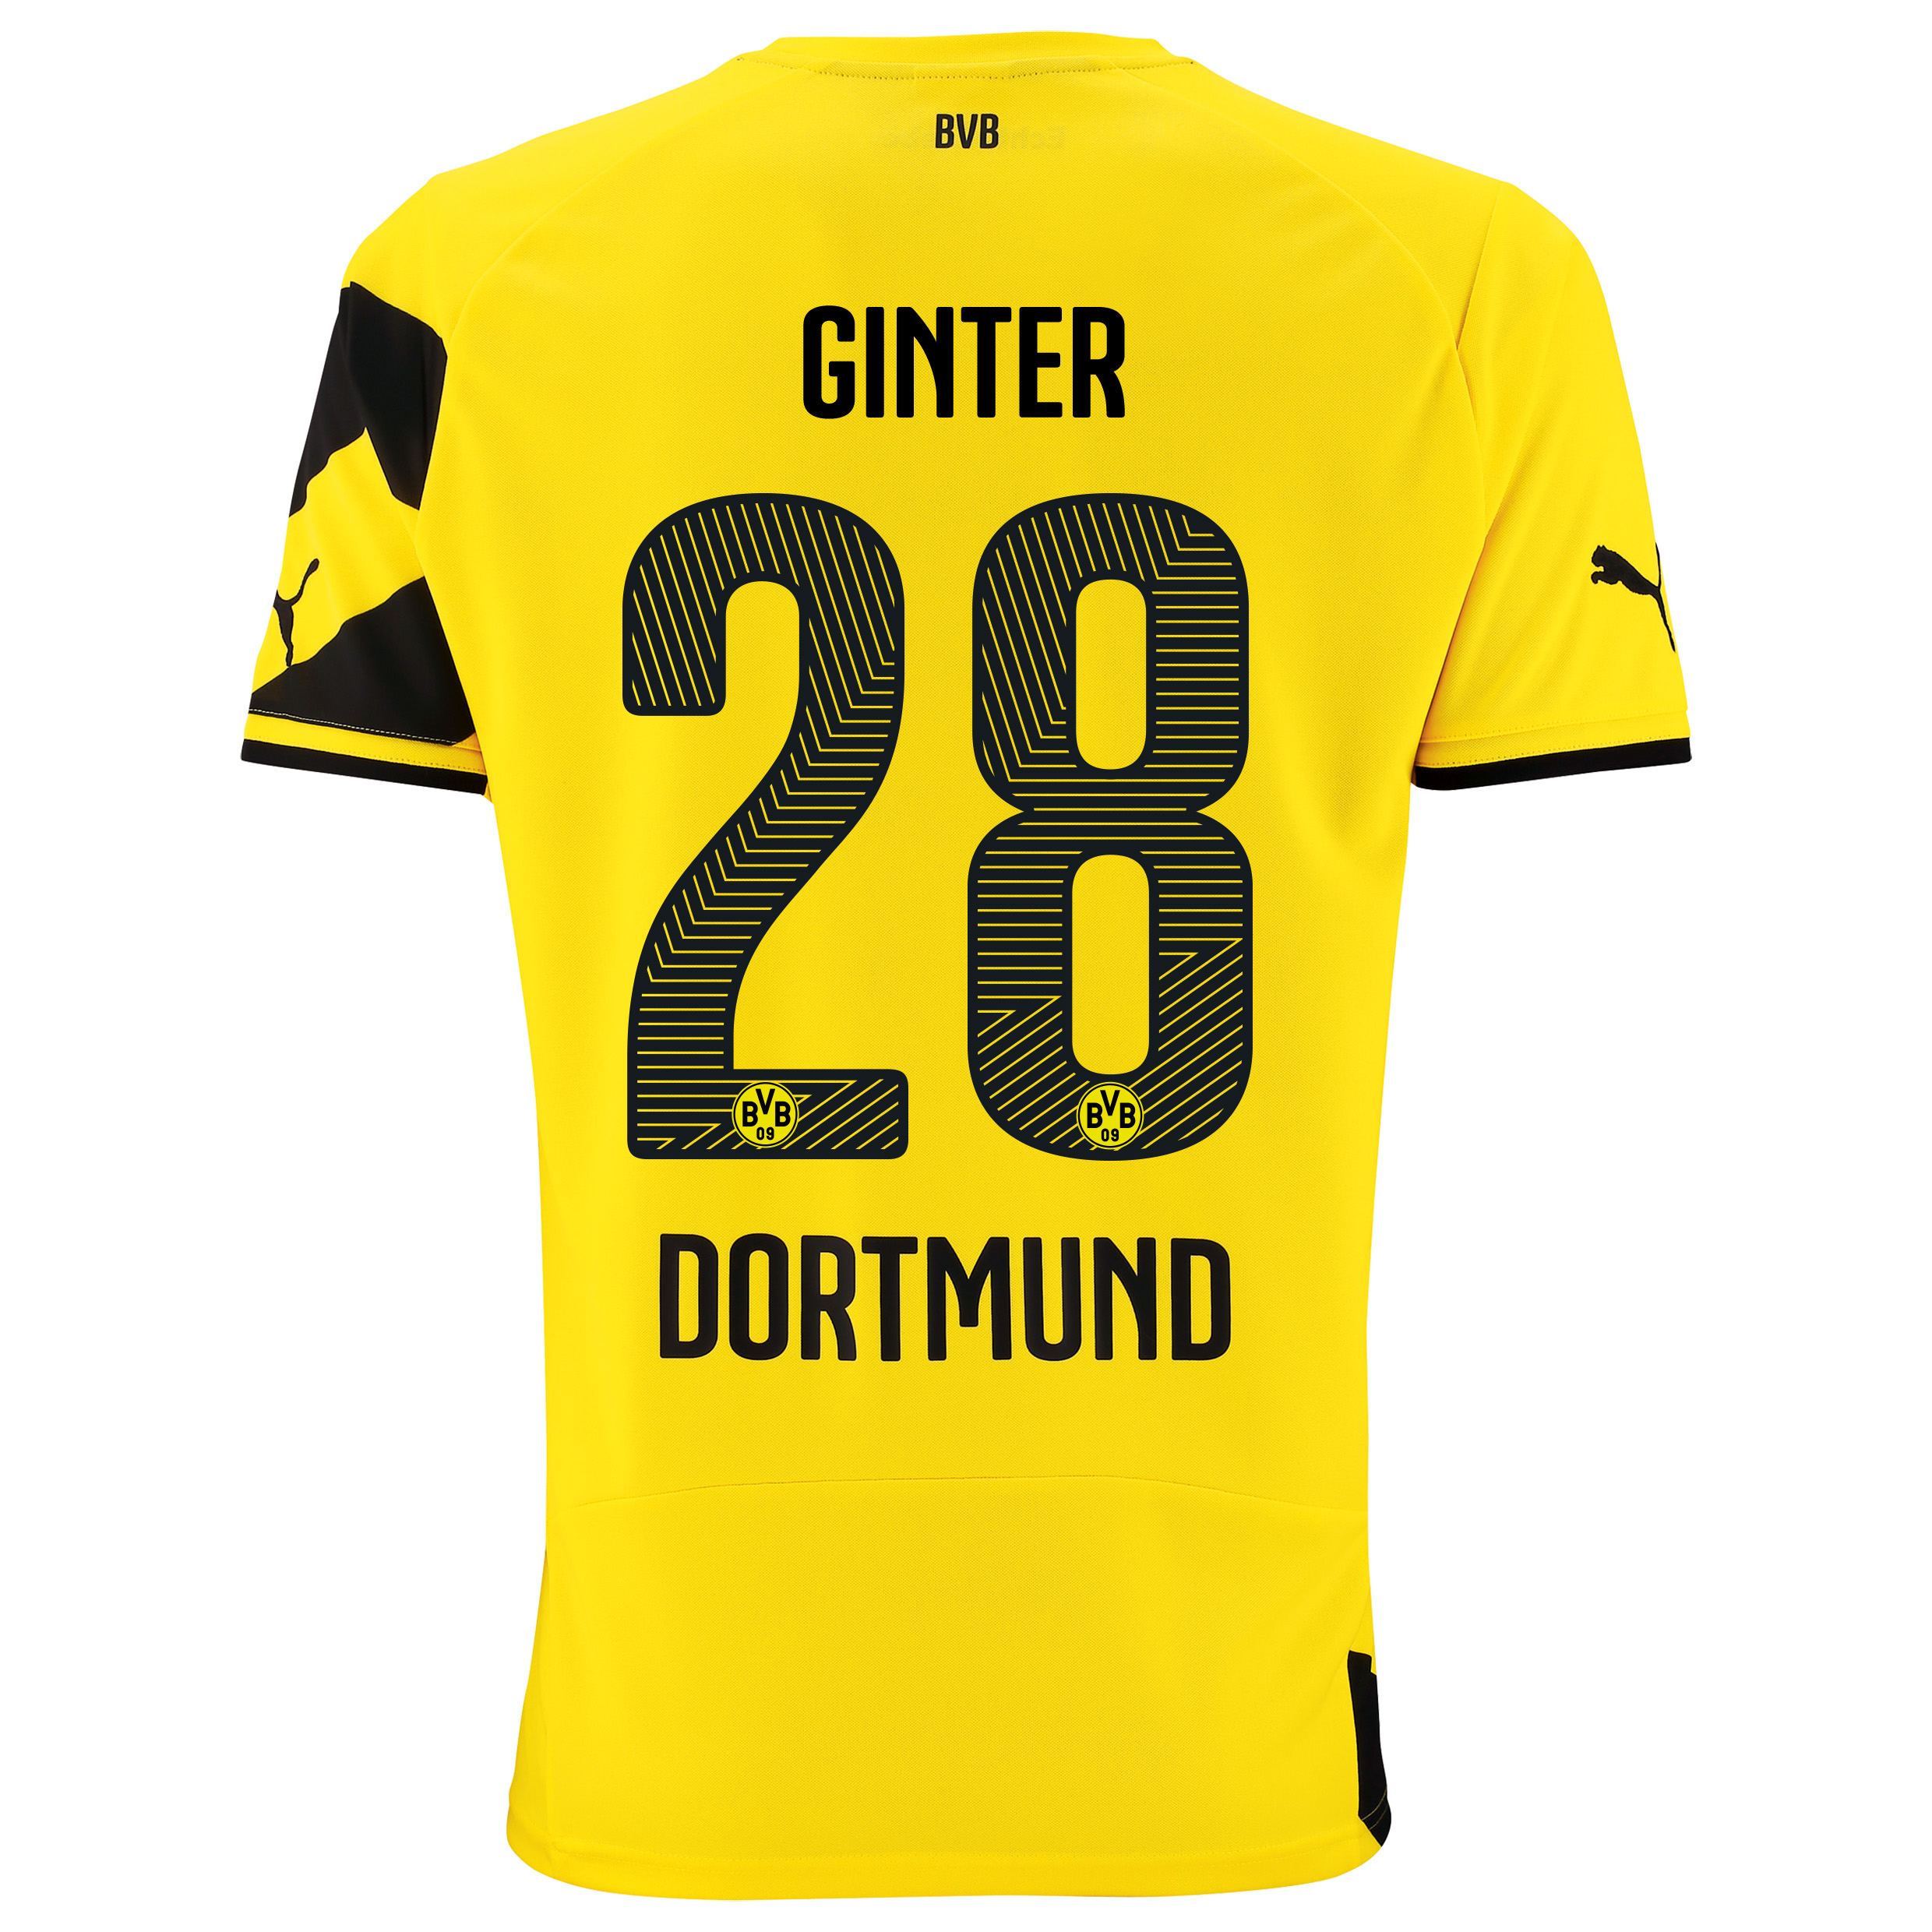 BVB Home Shirt 2014/15 with Matthias Ginter 28 printing